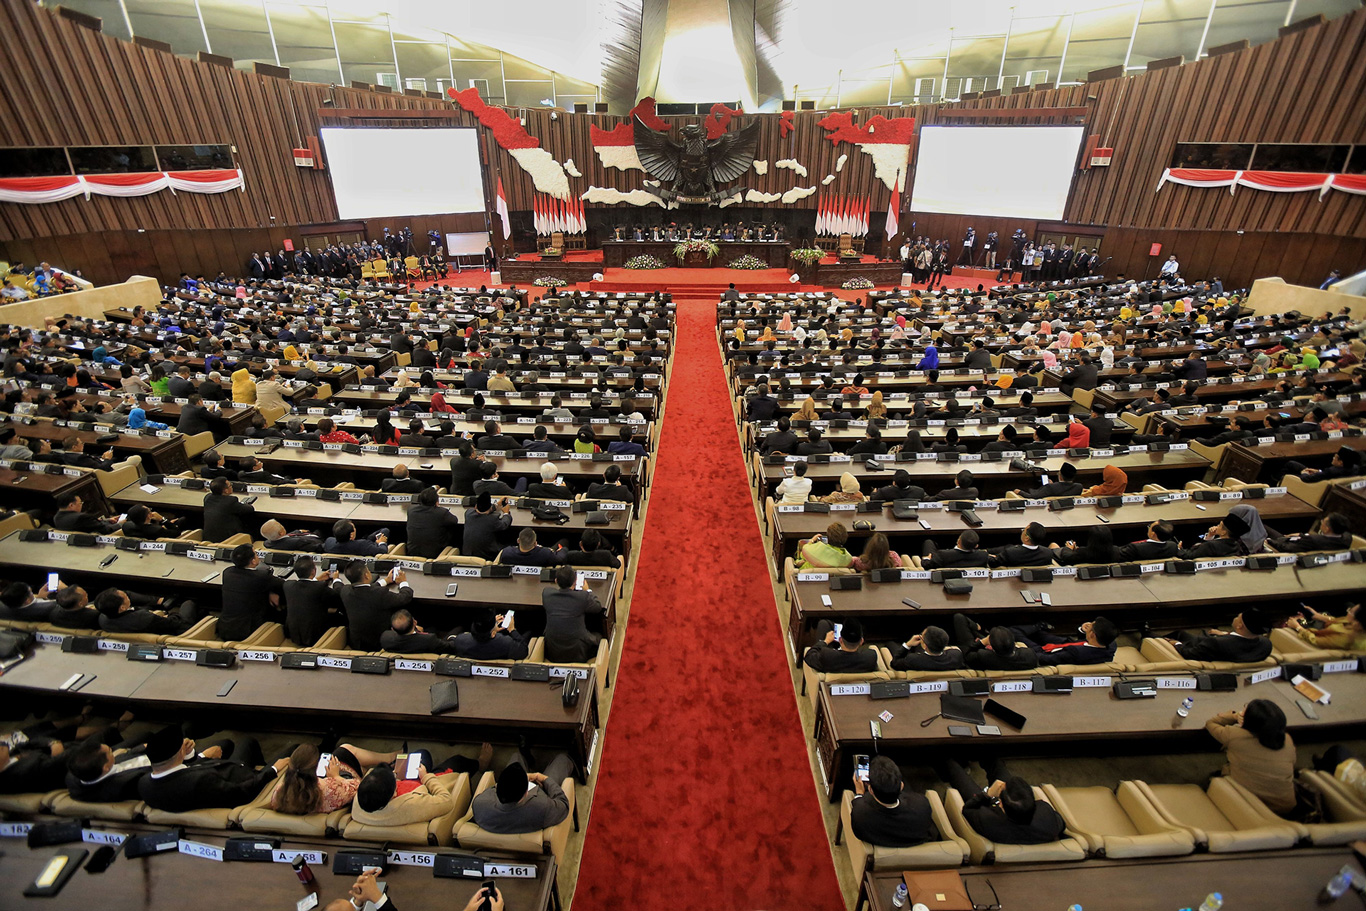 Amendment antagonism: Jokowi says no, MPR divided